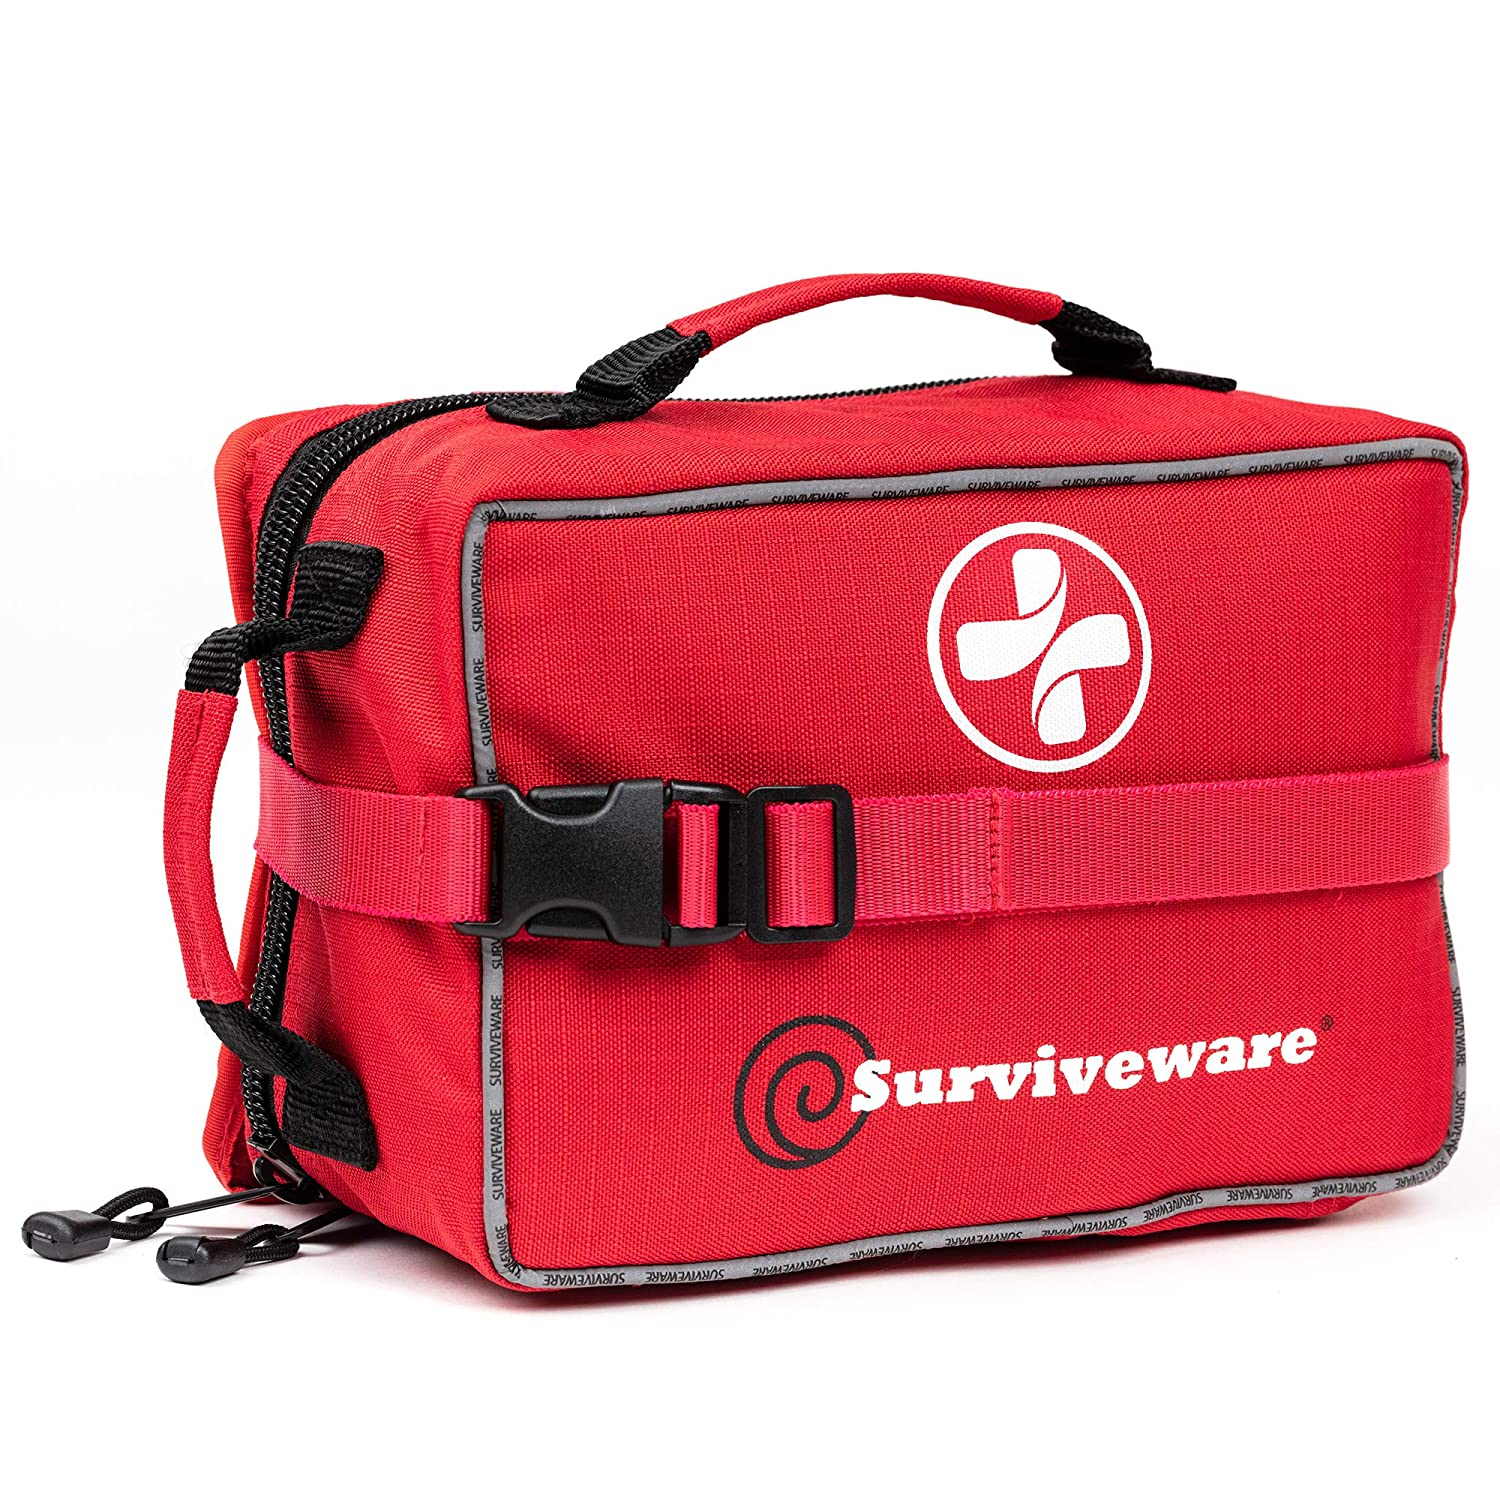 Surviveware Large First Aid Kit for Extended Camping Trips, Cars, Boats, Trucks, Office, Home and Family Use with Bonus Mini Kit